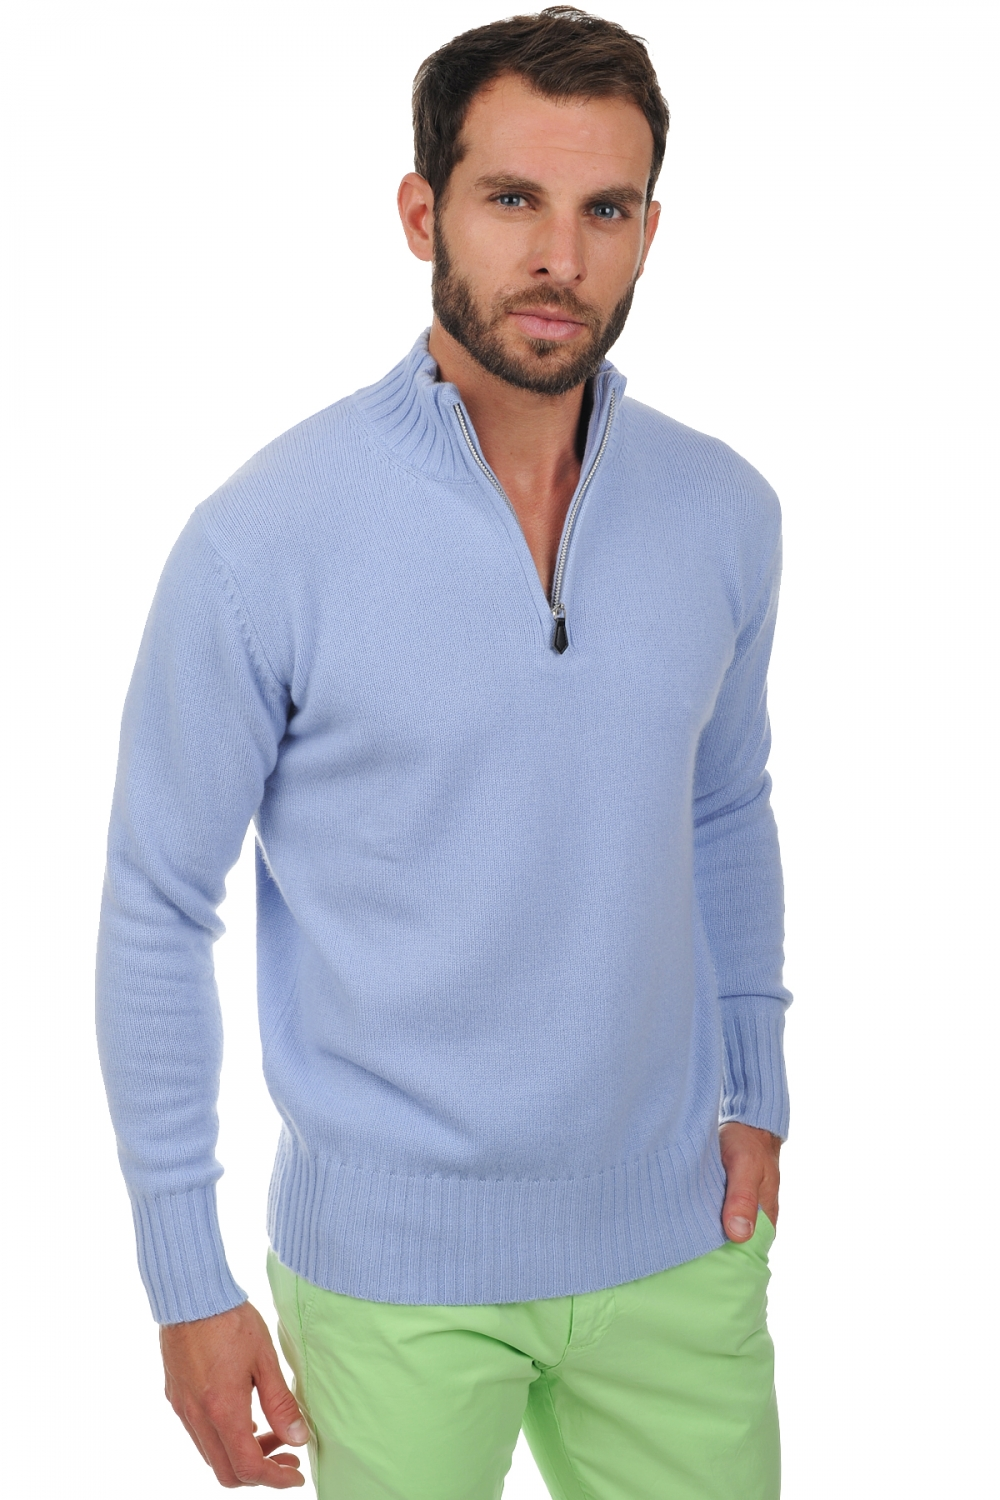 men polo style sweaters charles kentucky blue l